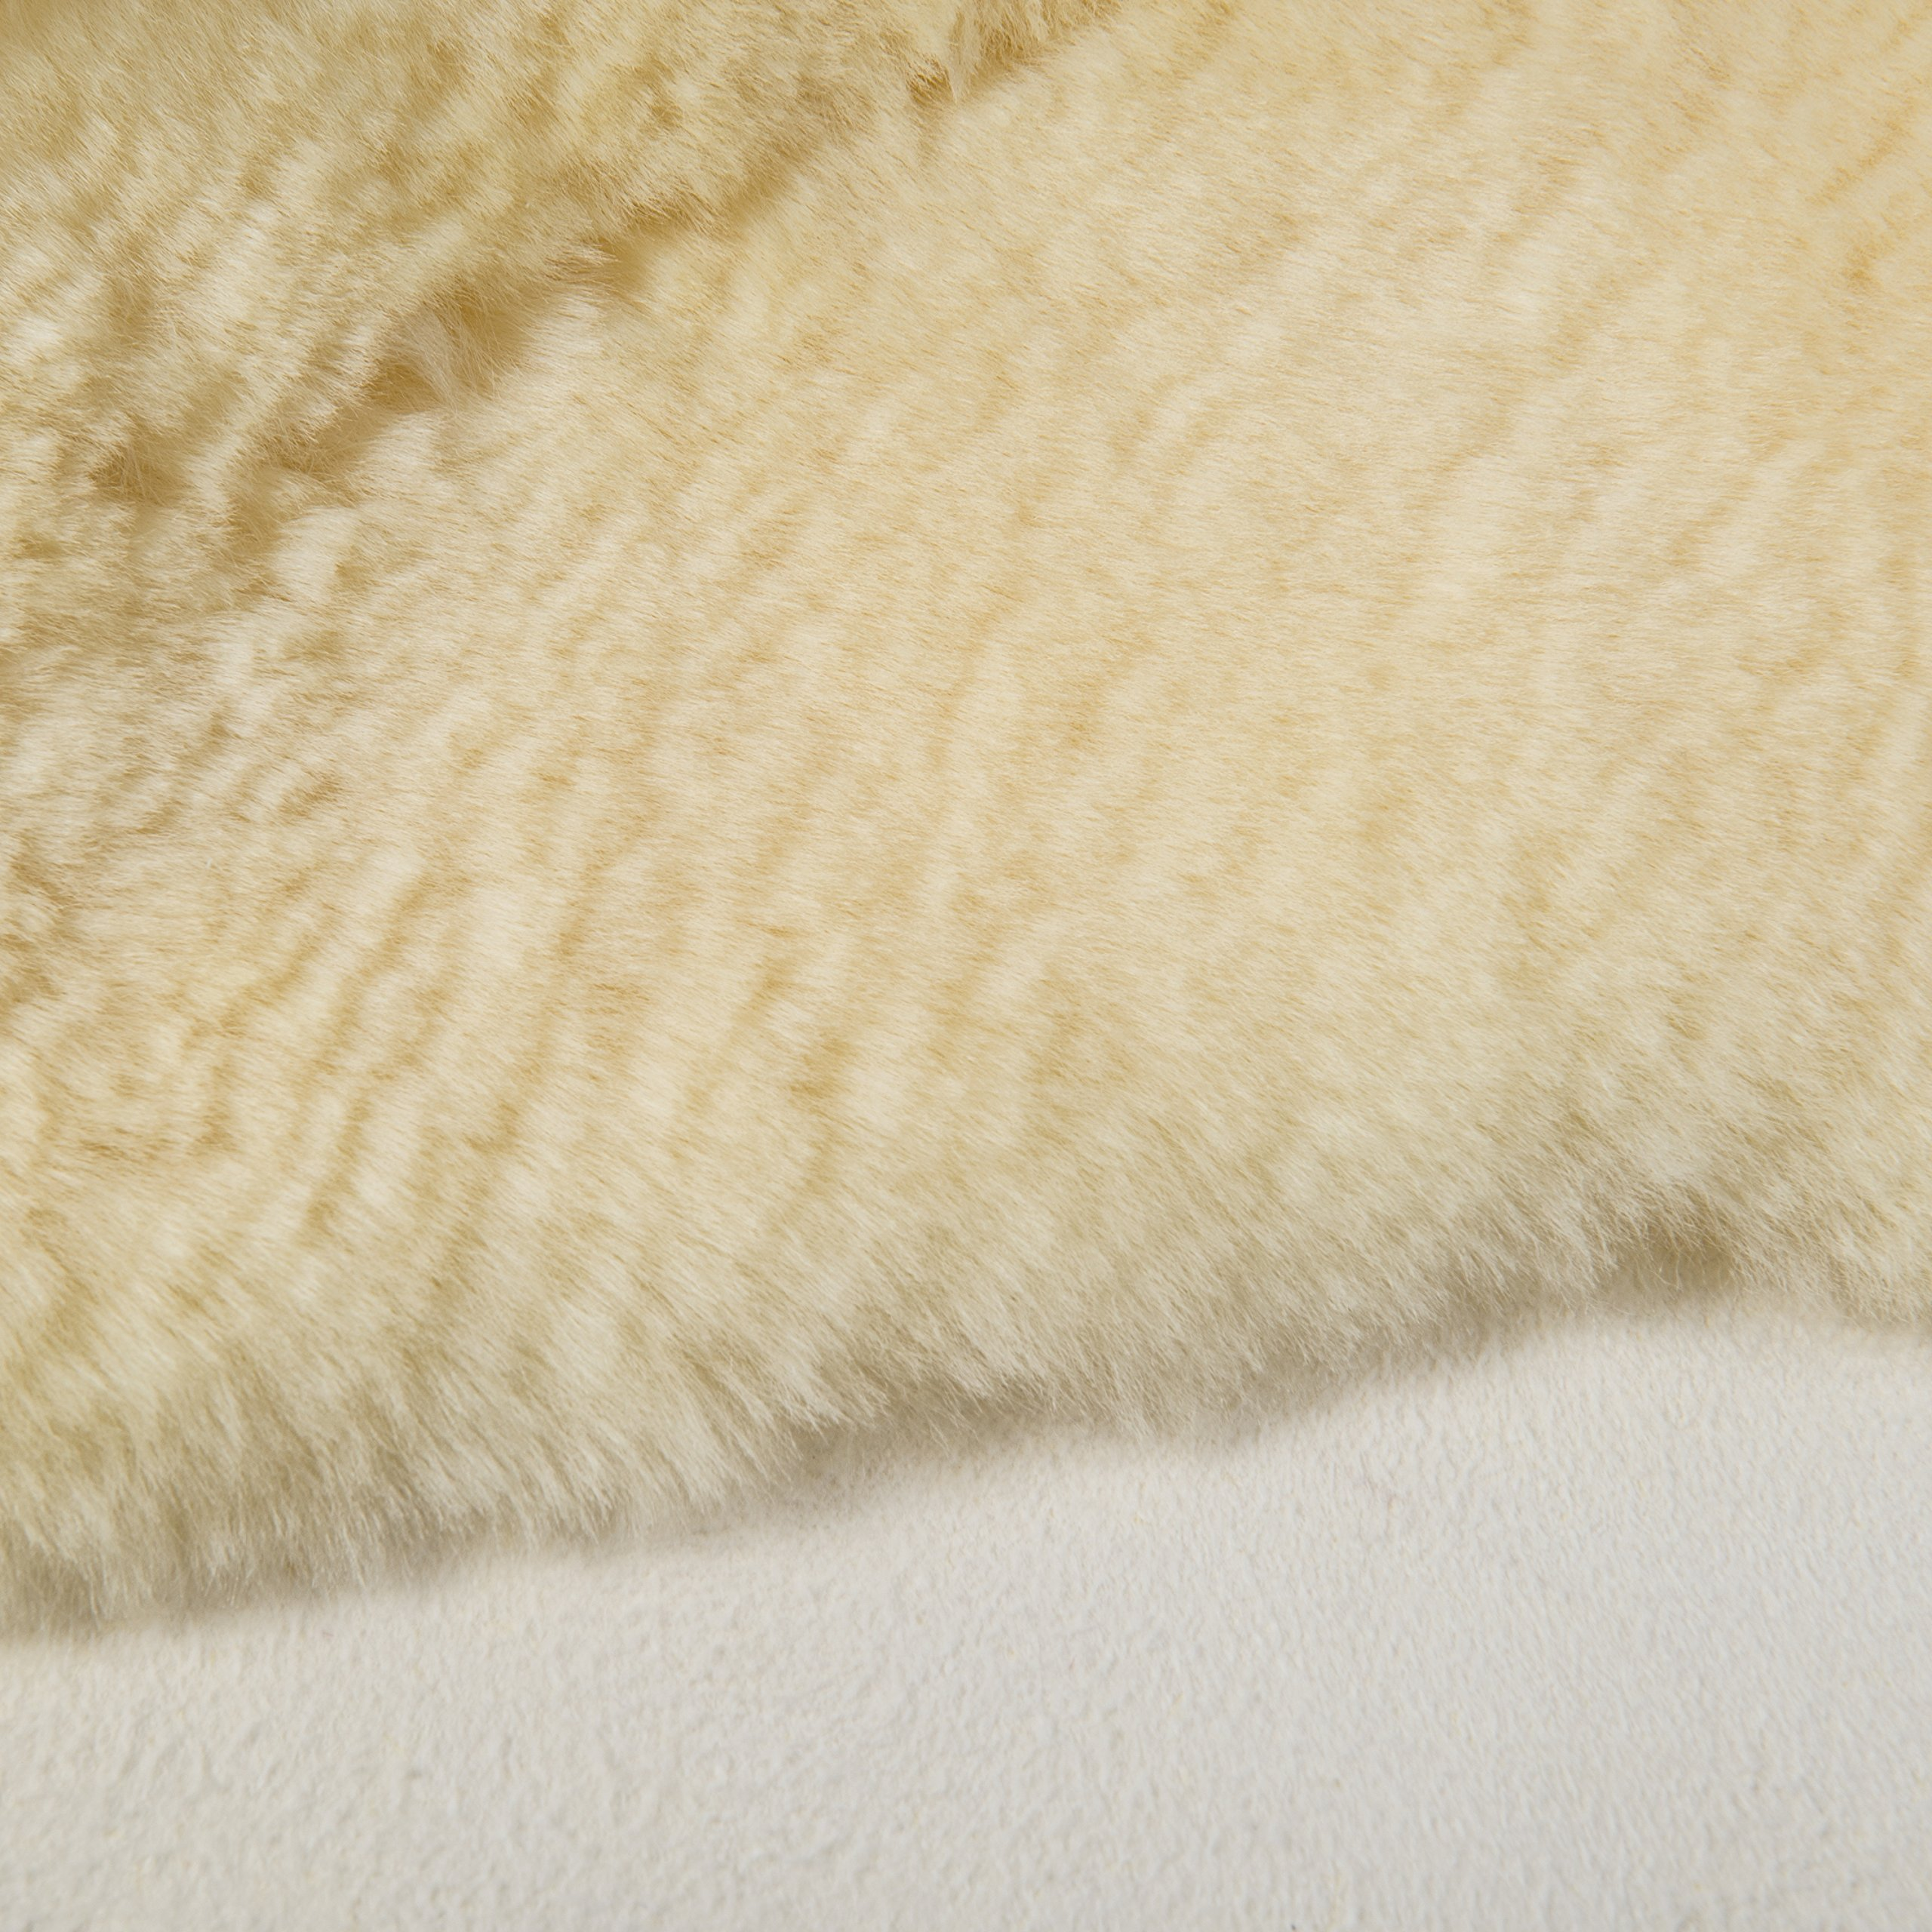 DMI Natural Sheepskin Wool Comfort Mattress Bed Pad Bed Mat, Washable, 8 to 9 Square Feet, Beige by Briggs (Image #6)